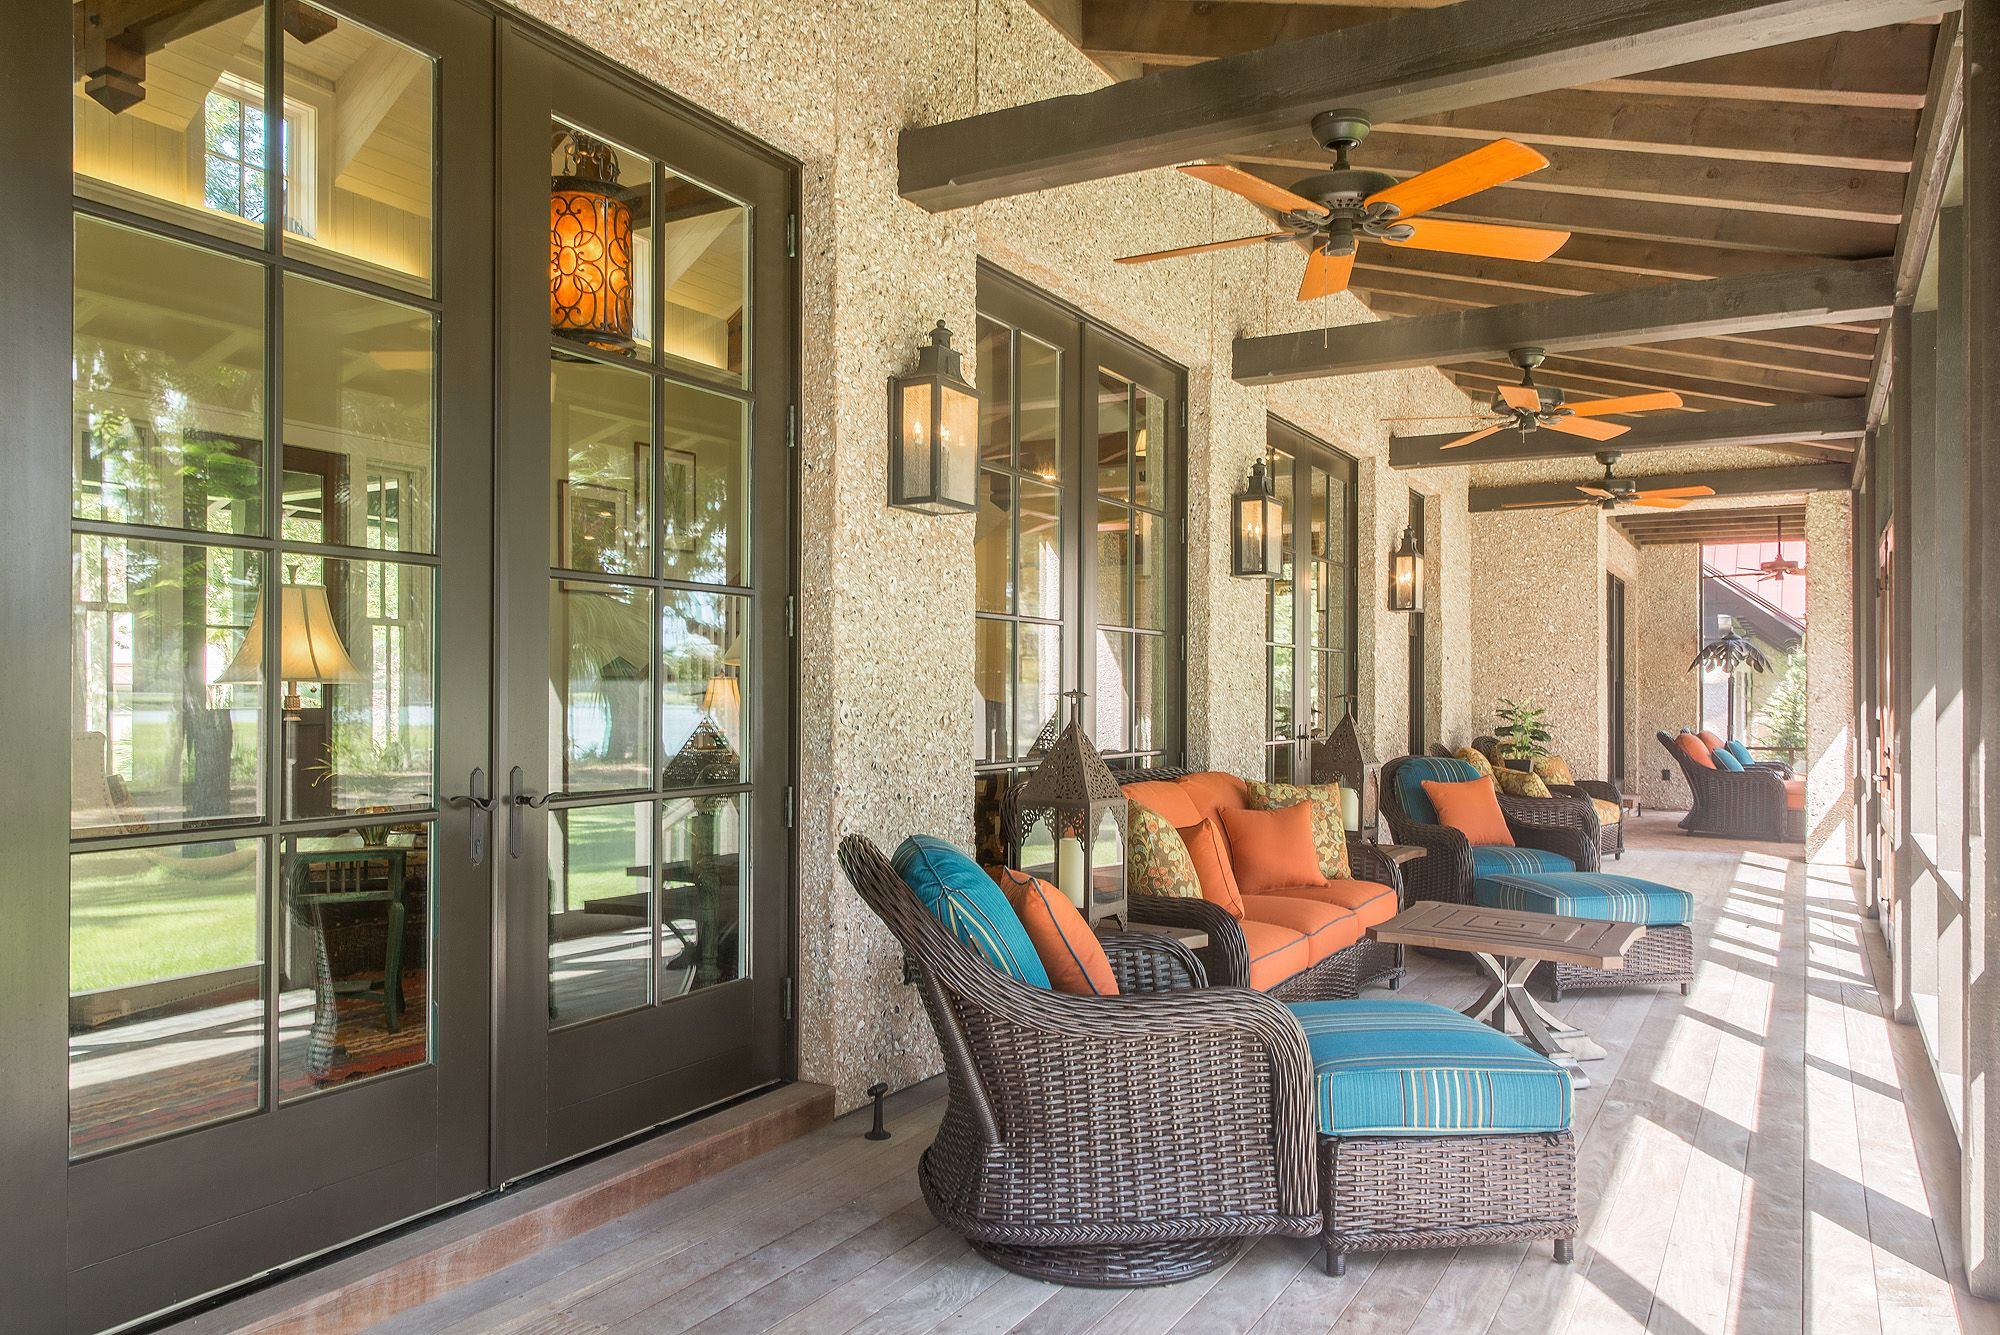 Real Estate · Outdoor Living | Outdoor Seating Ideas | Southern Style ...